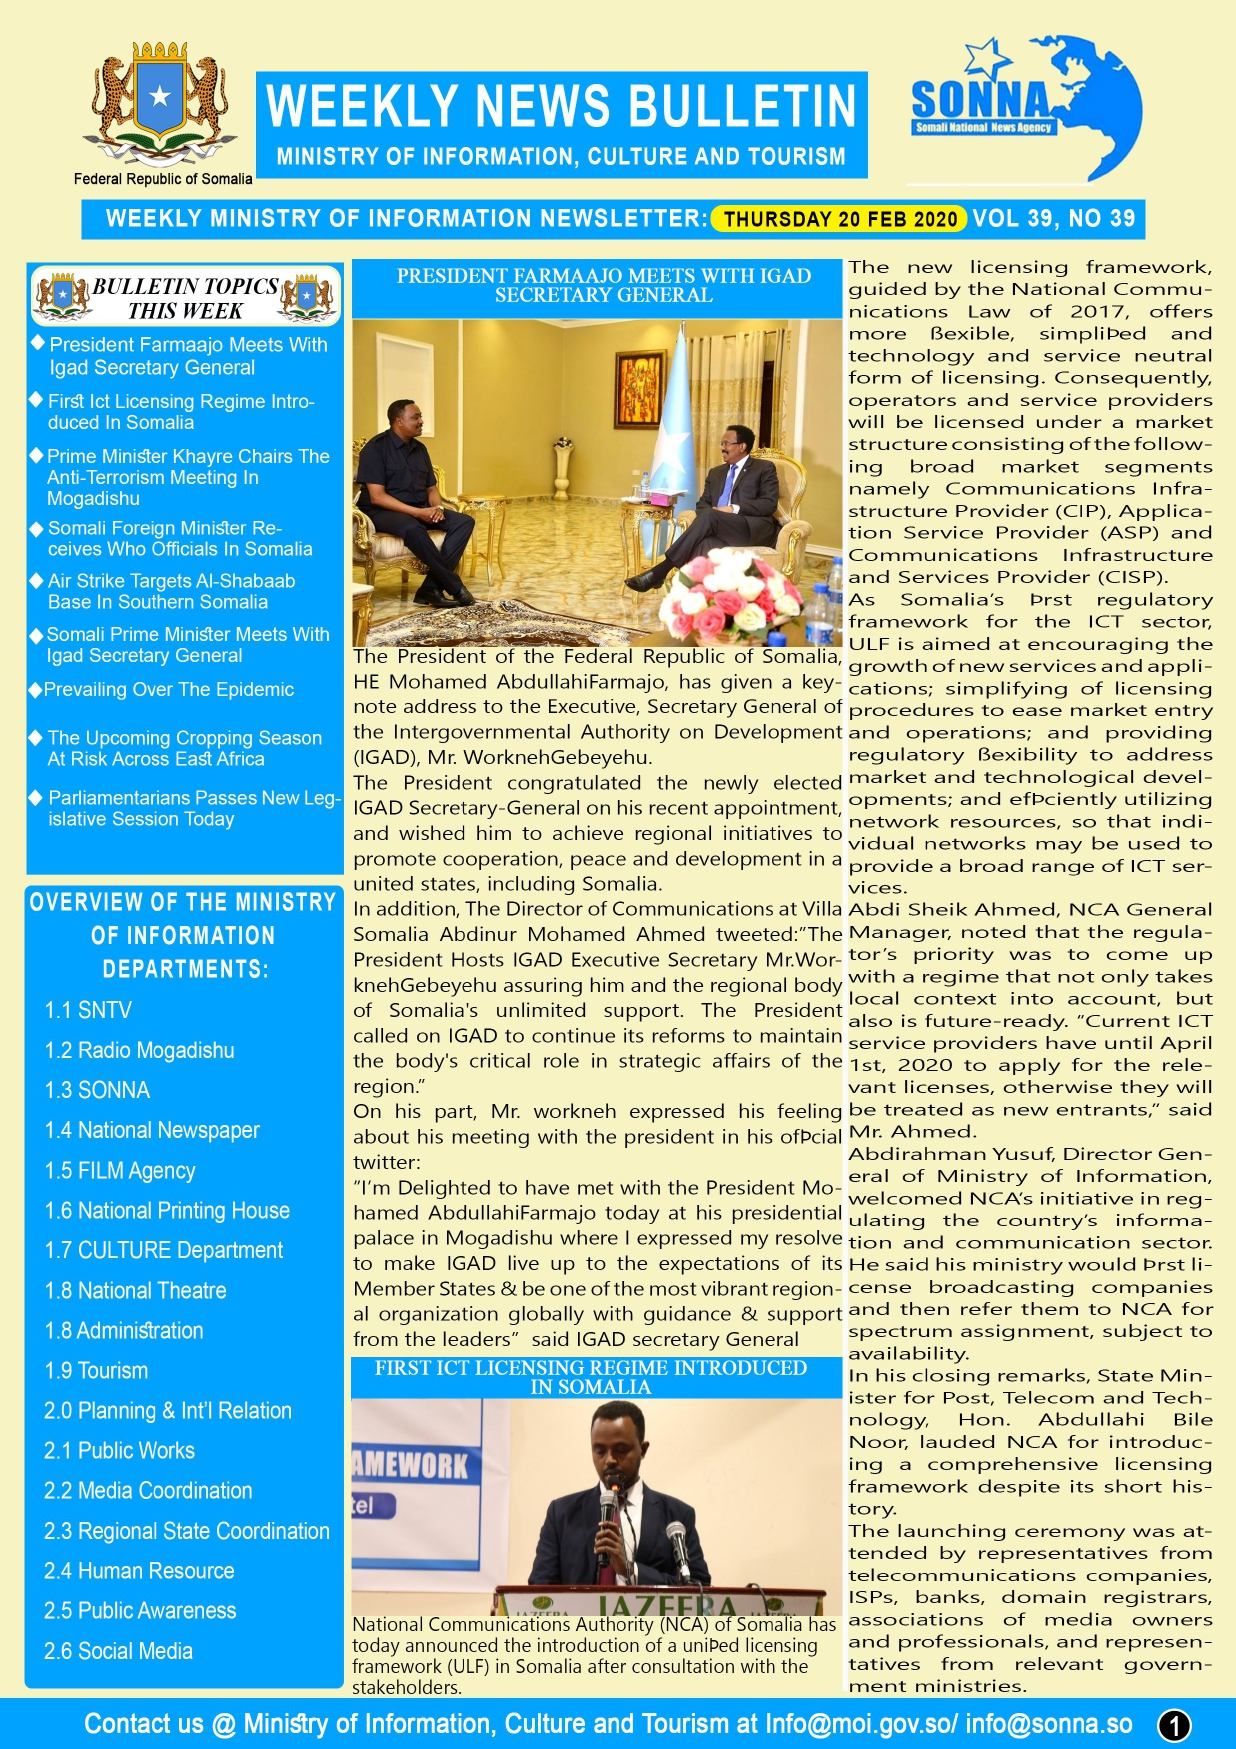 News Weekly Bulletin Vol 39